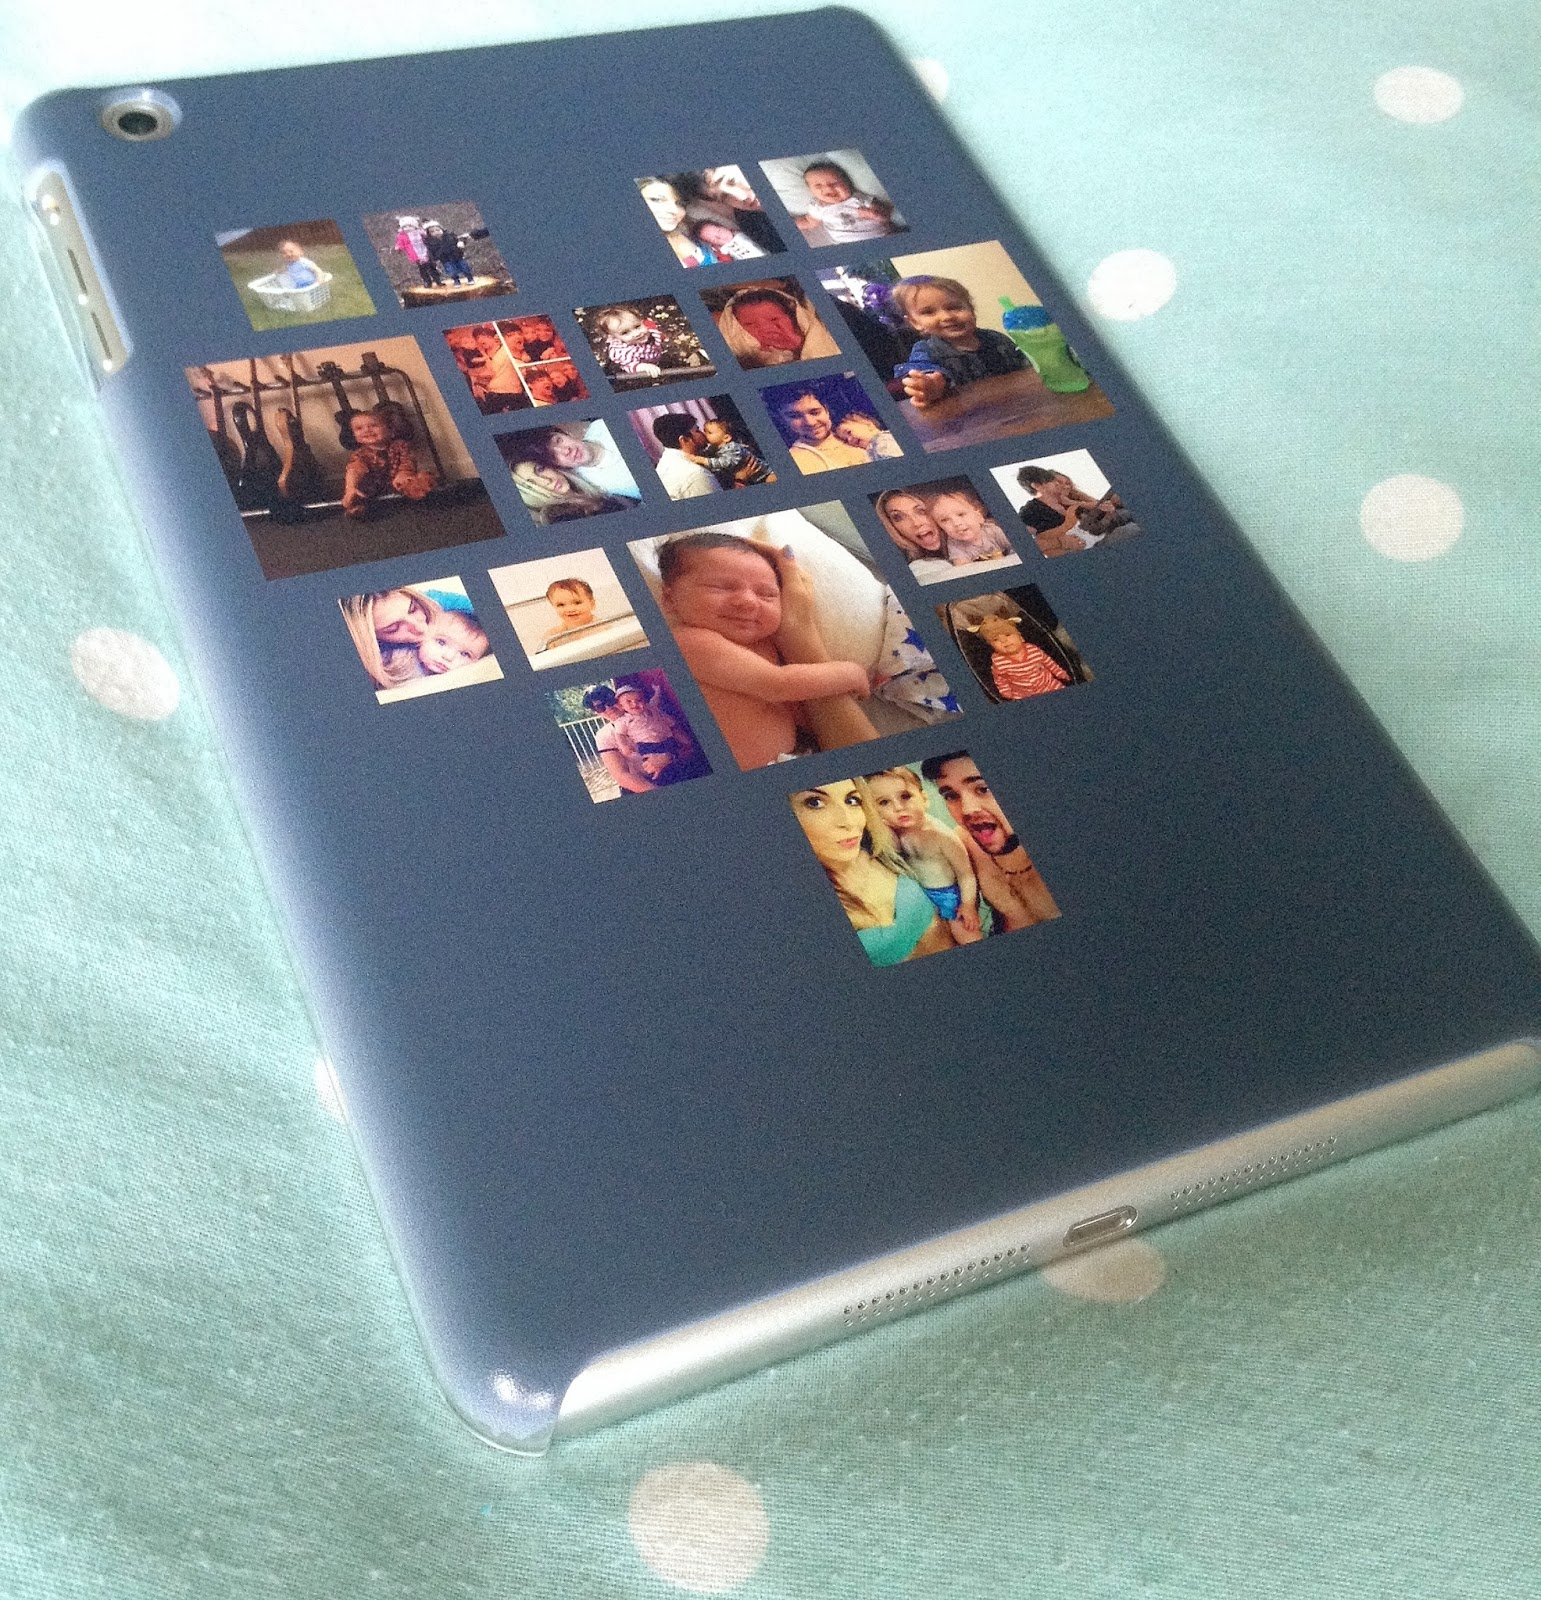 mr-nutcase-ipad-case